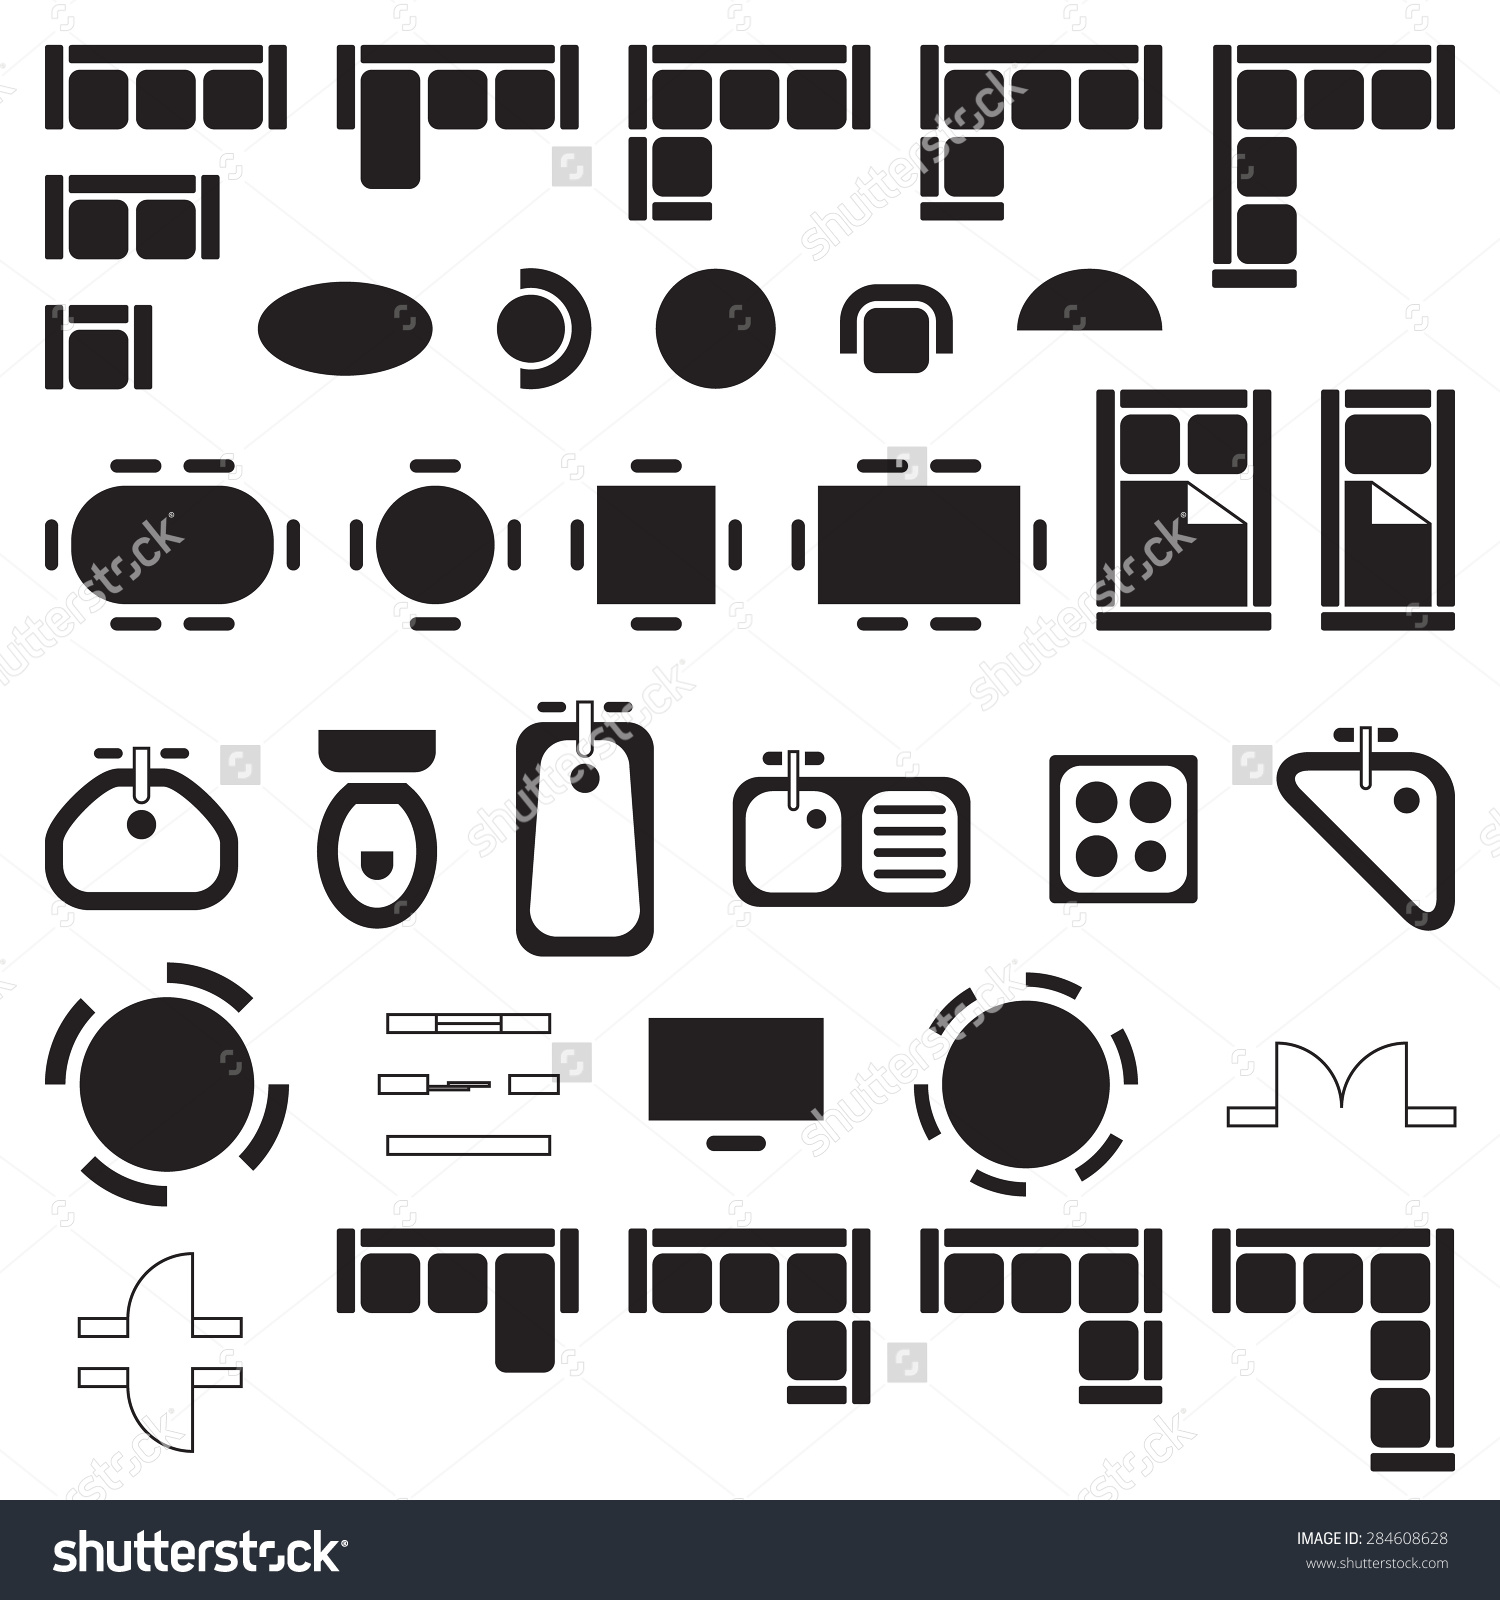 Architectural icons clipart.